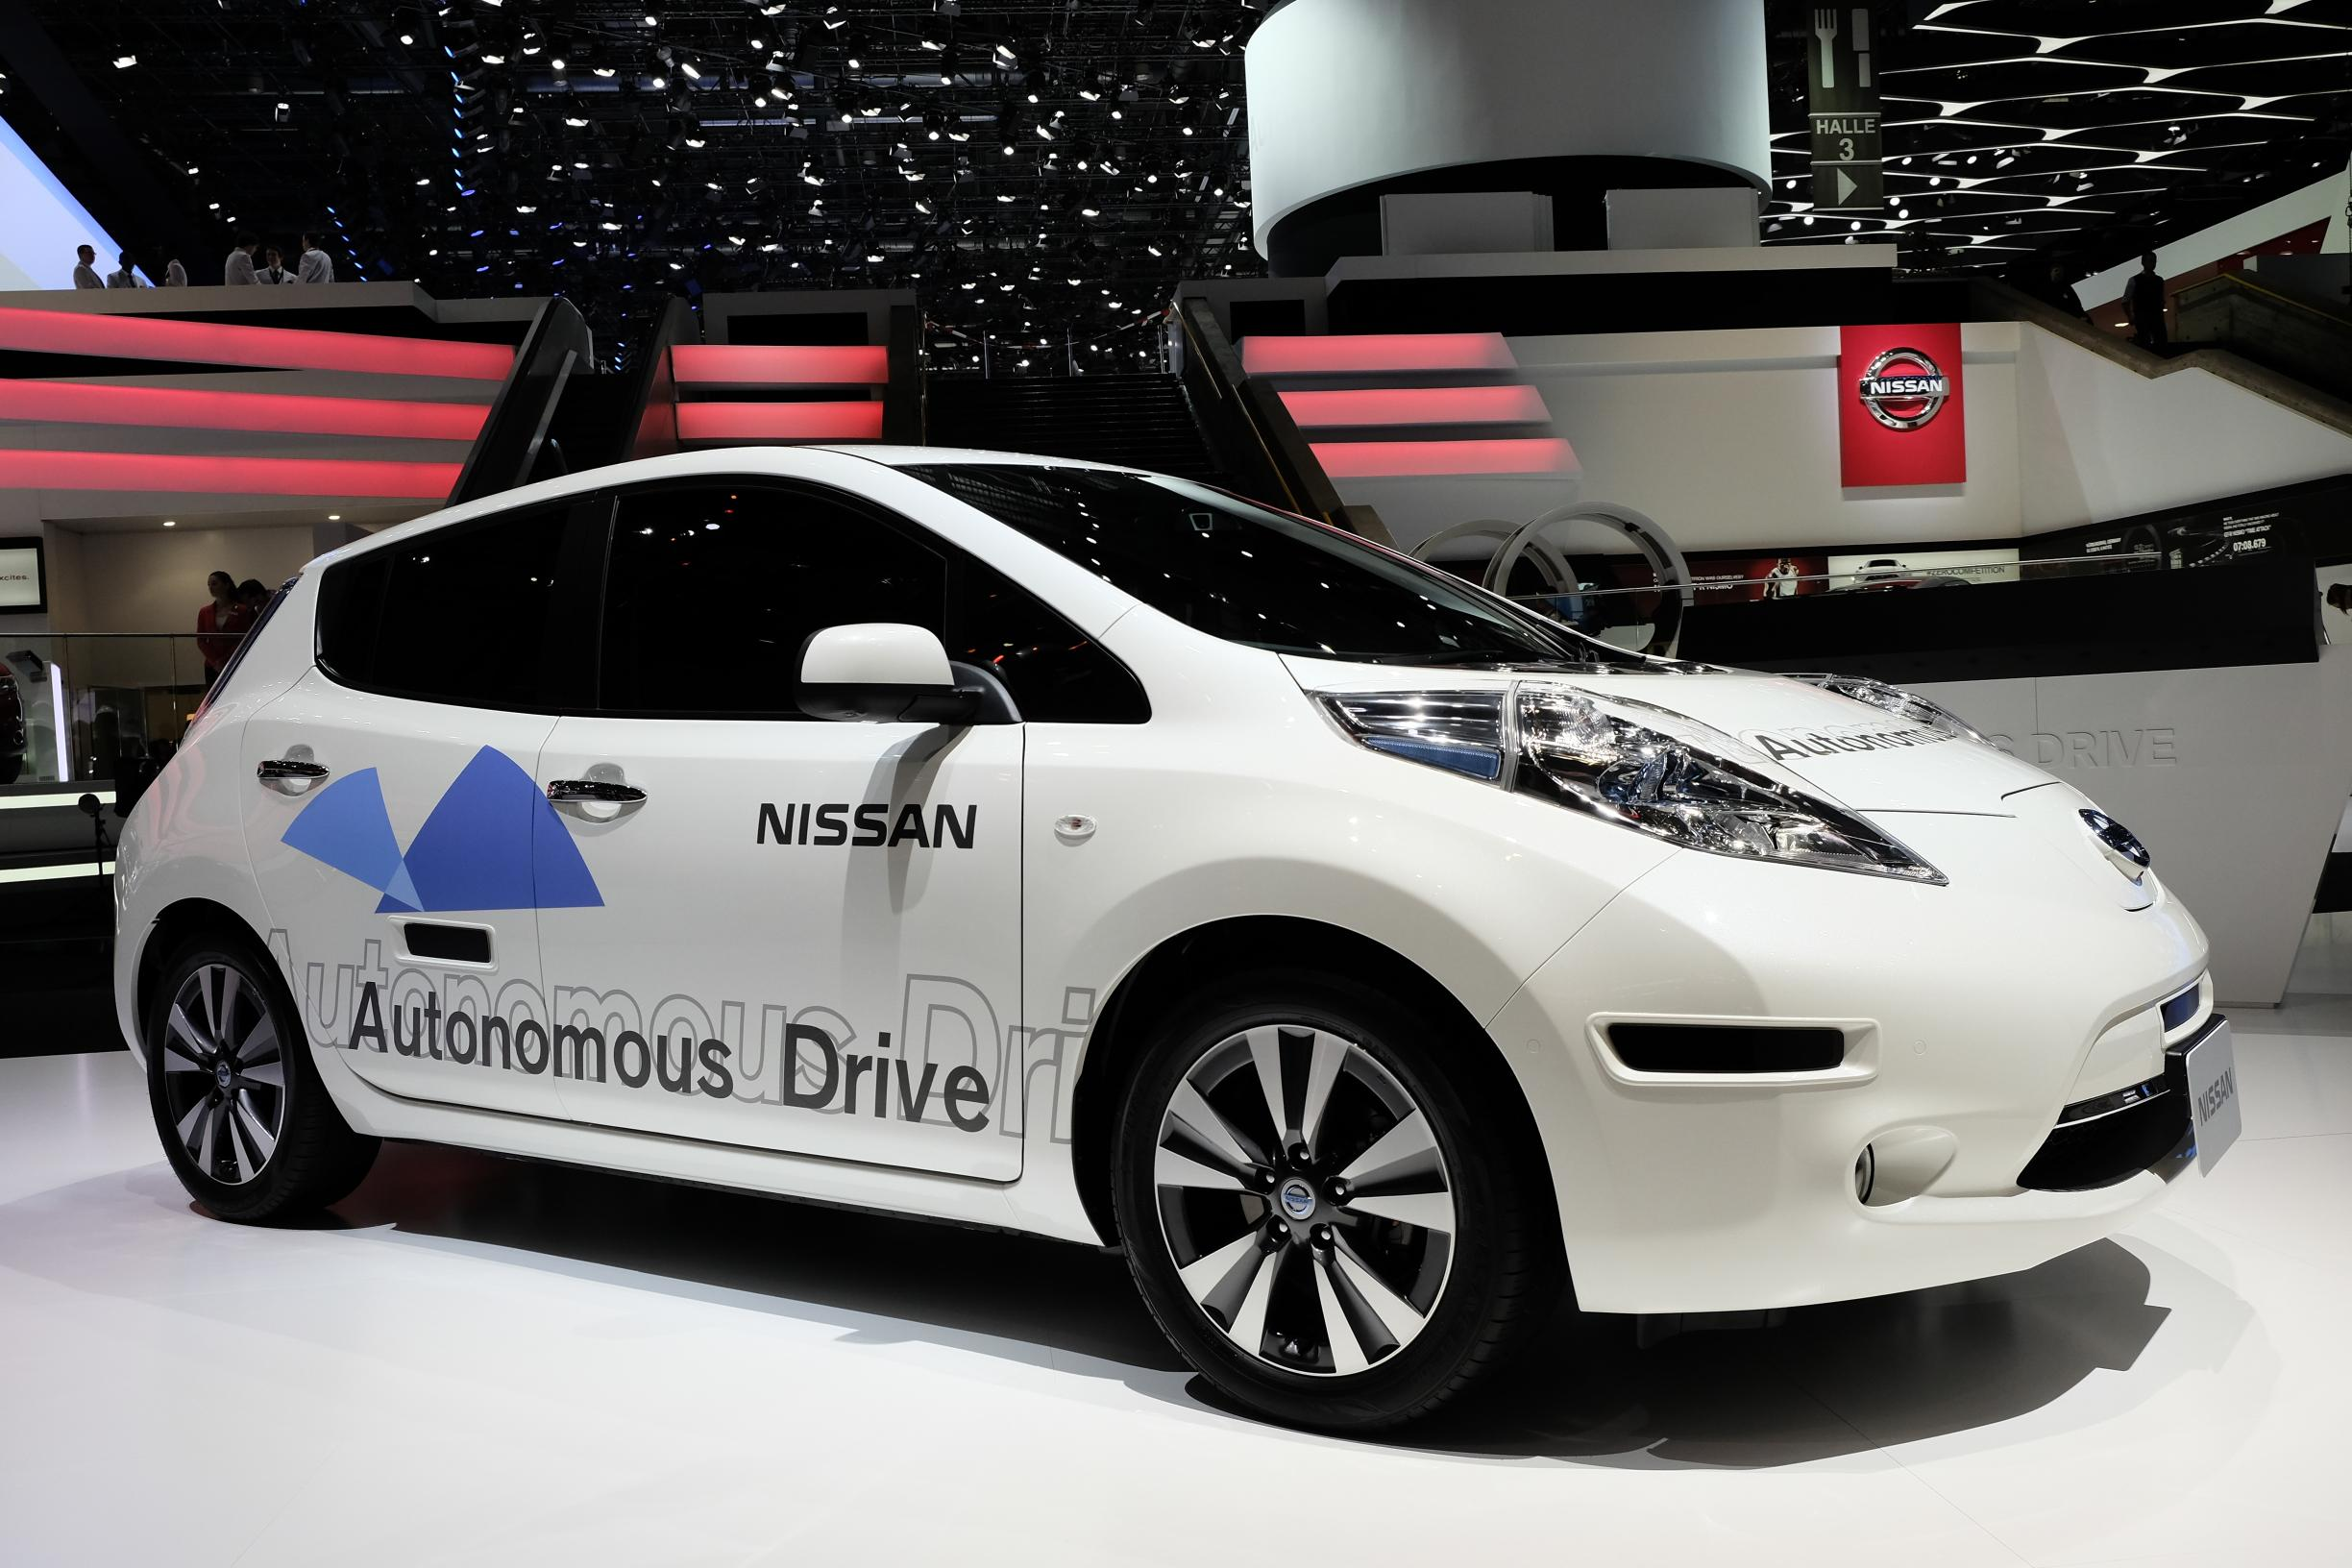 2014 Nissan LEAF Garners Good Housekeeping Honors